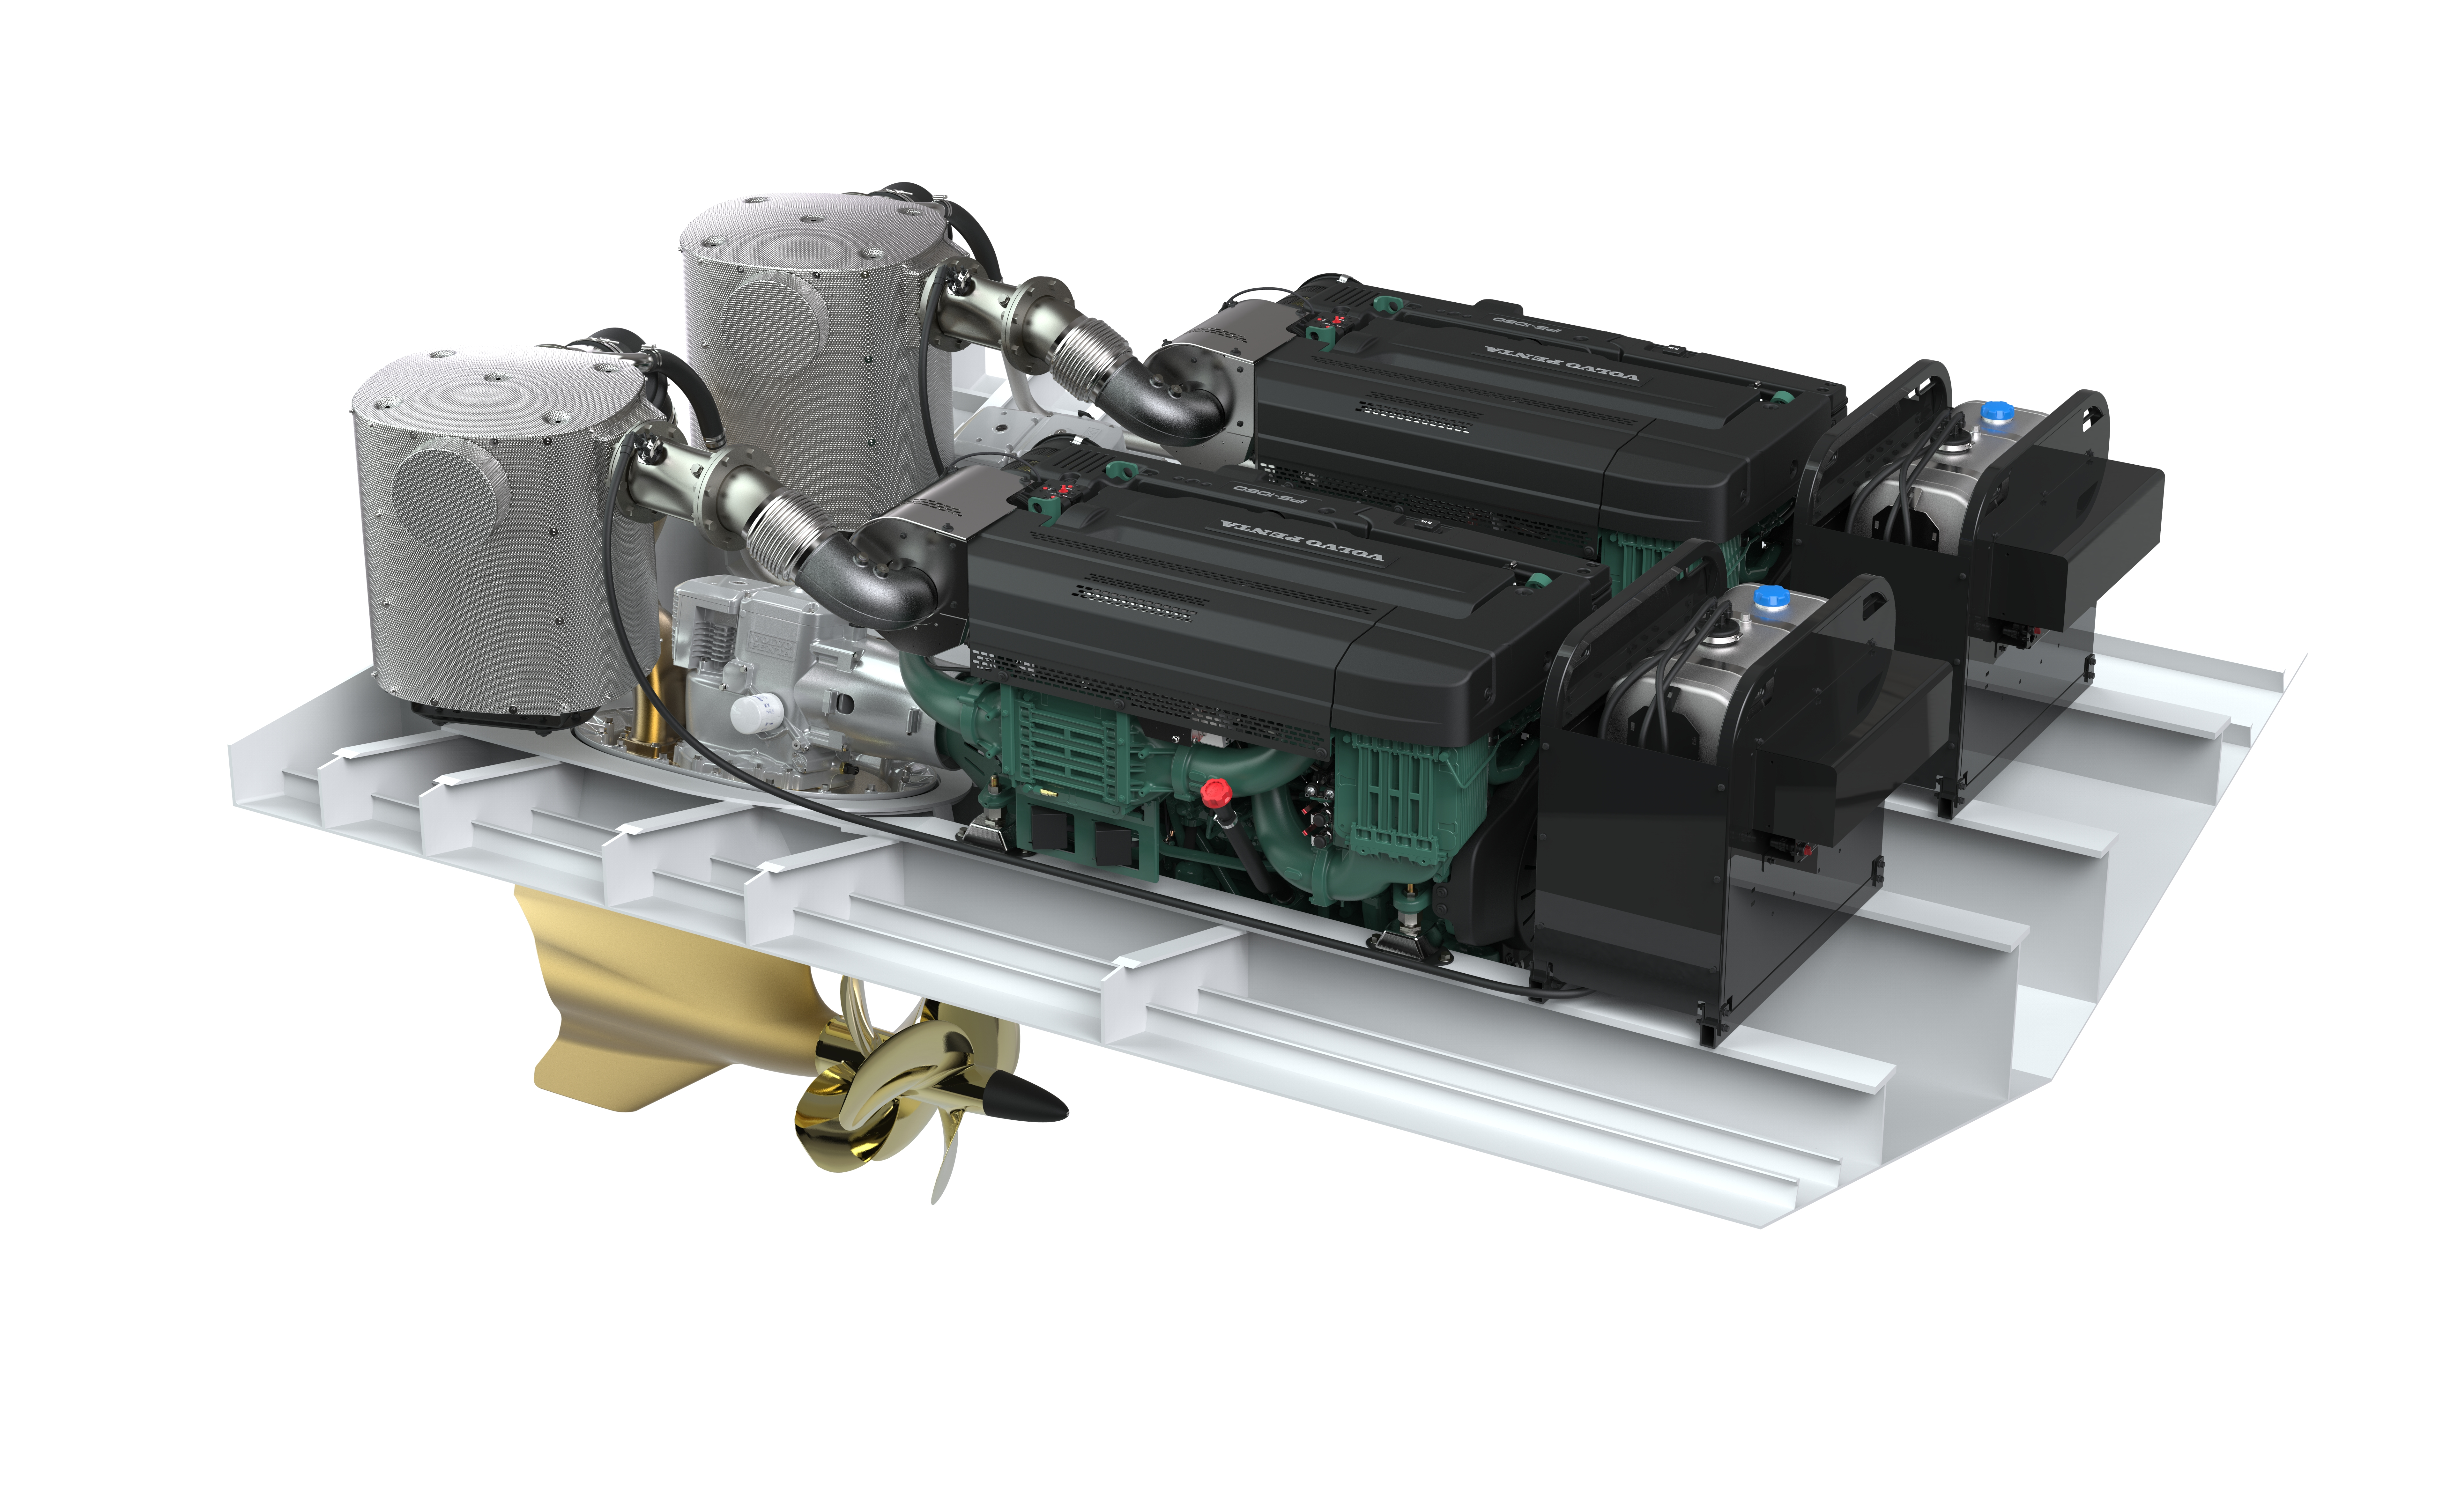 Marine Pacific Power Group Volvo Penta Fuel Filter Wrench Pentas Scr System Solves Emission Conundrum